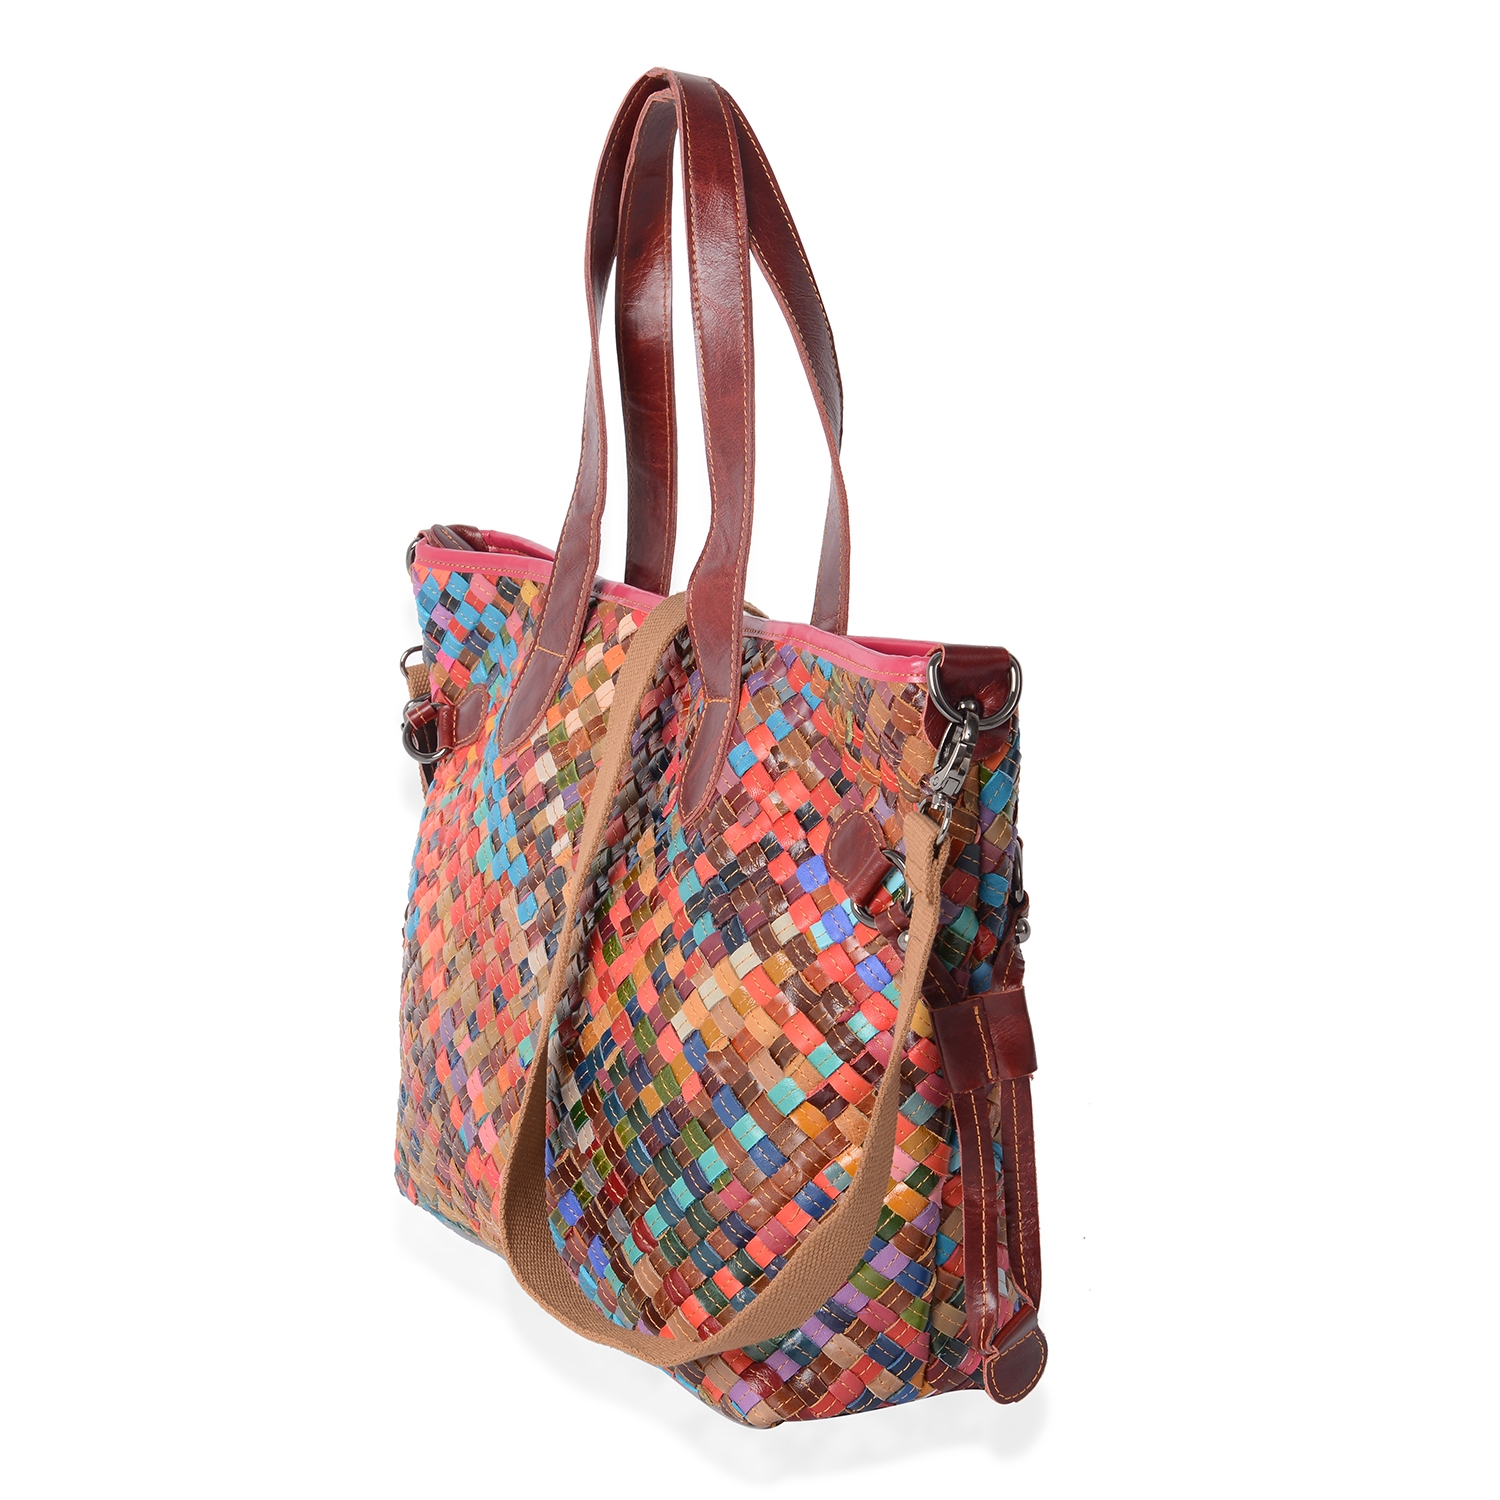 CHAOS BY ELSIE Mutli Color Woven Genuine Leather Tote Bag (17x5x12 in) with Detachable Shoulder Strap